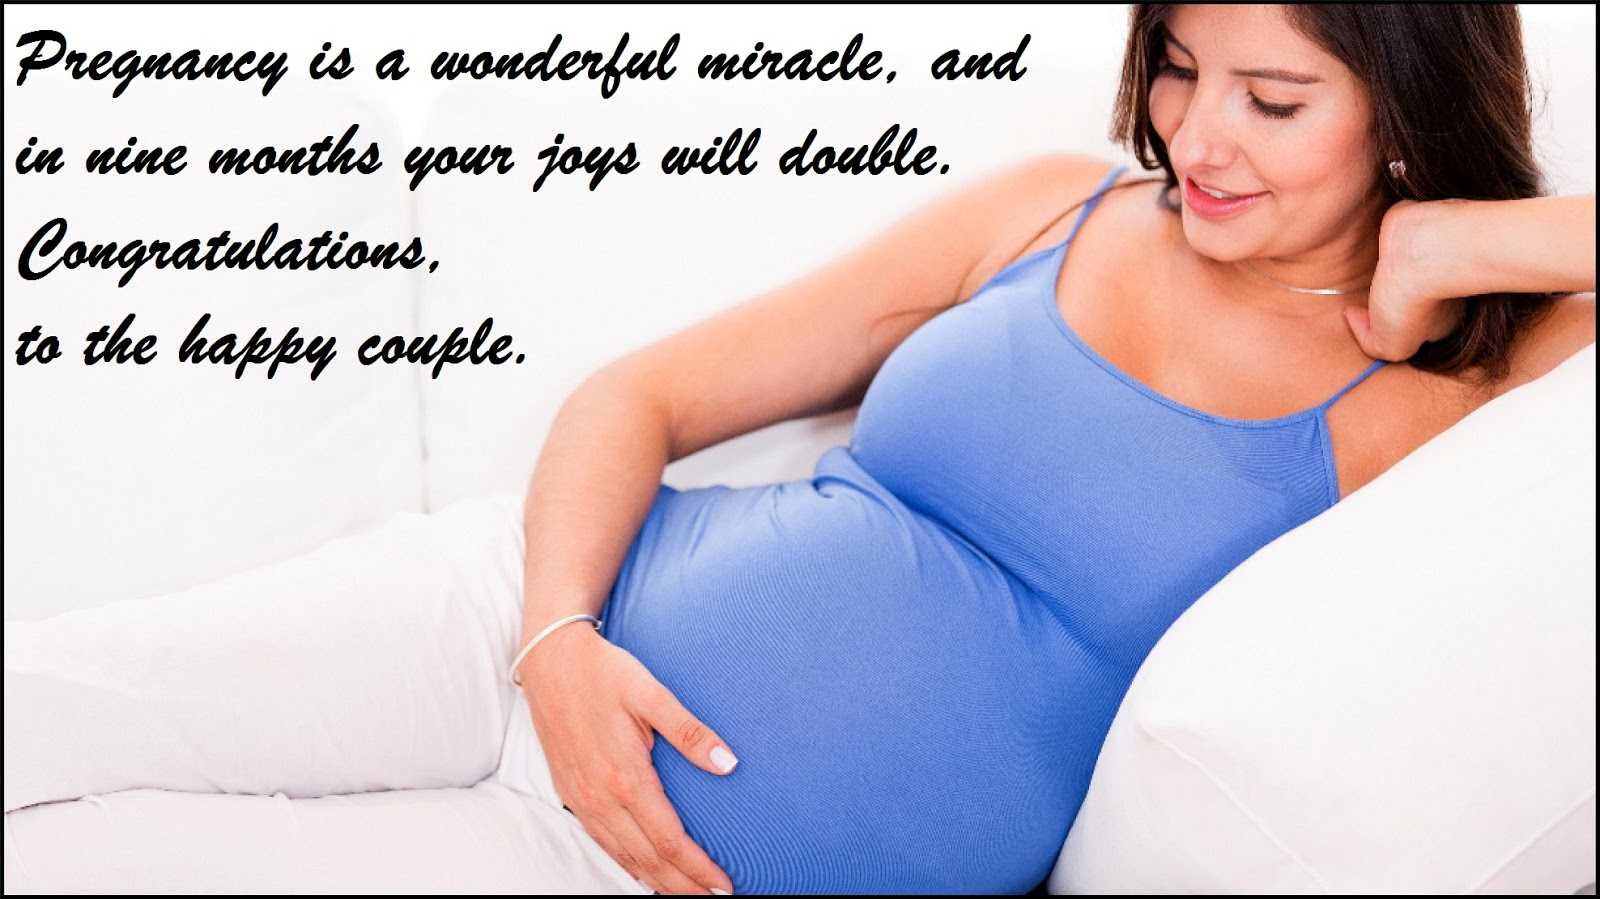 Funny pregnancy messages beautiful messages messages for pregnant m4hsunfo